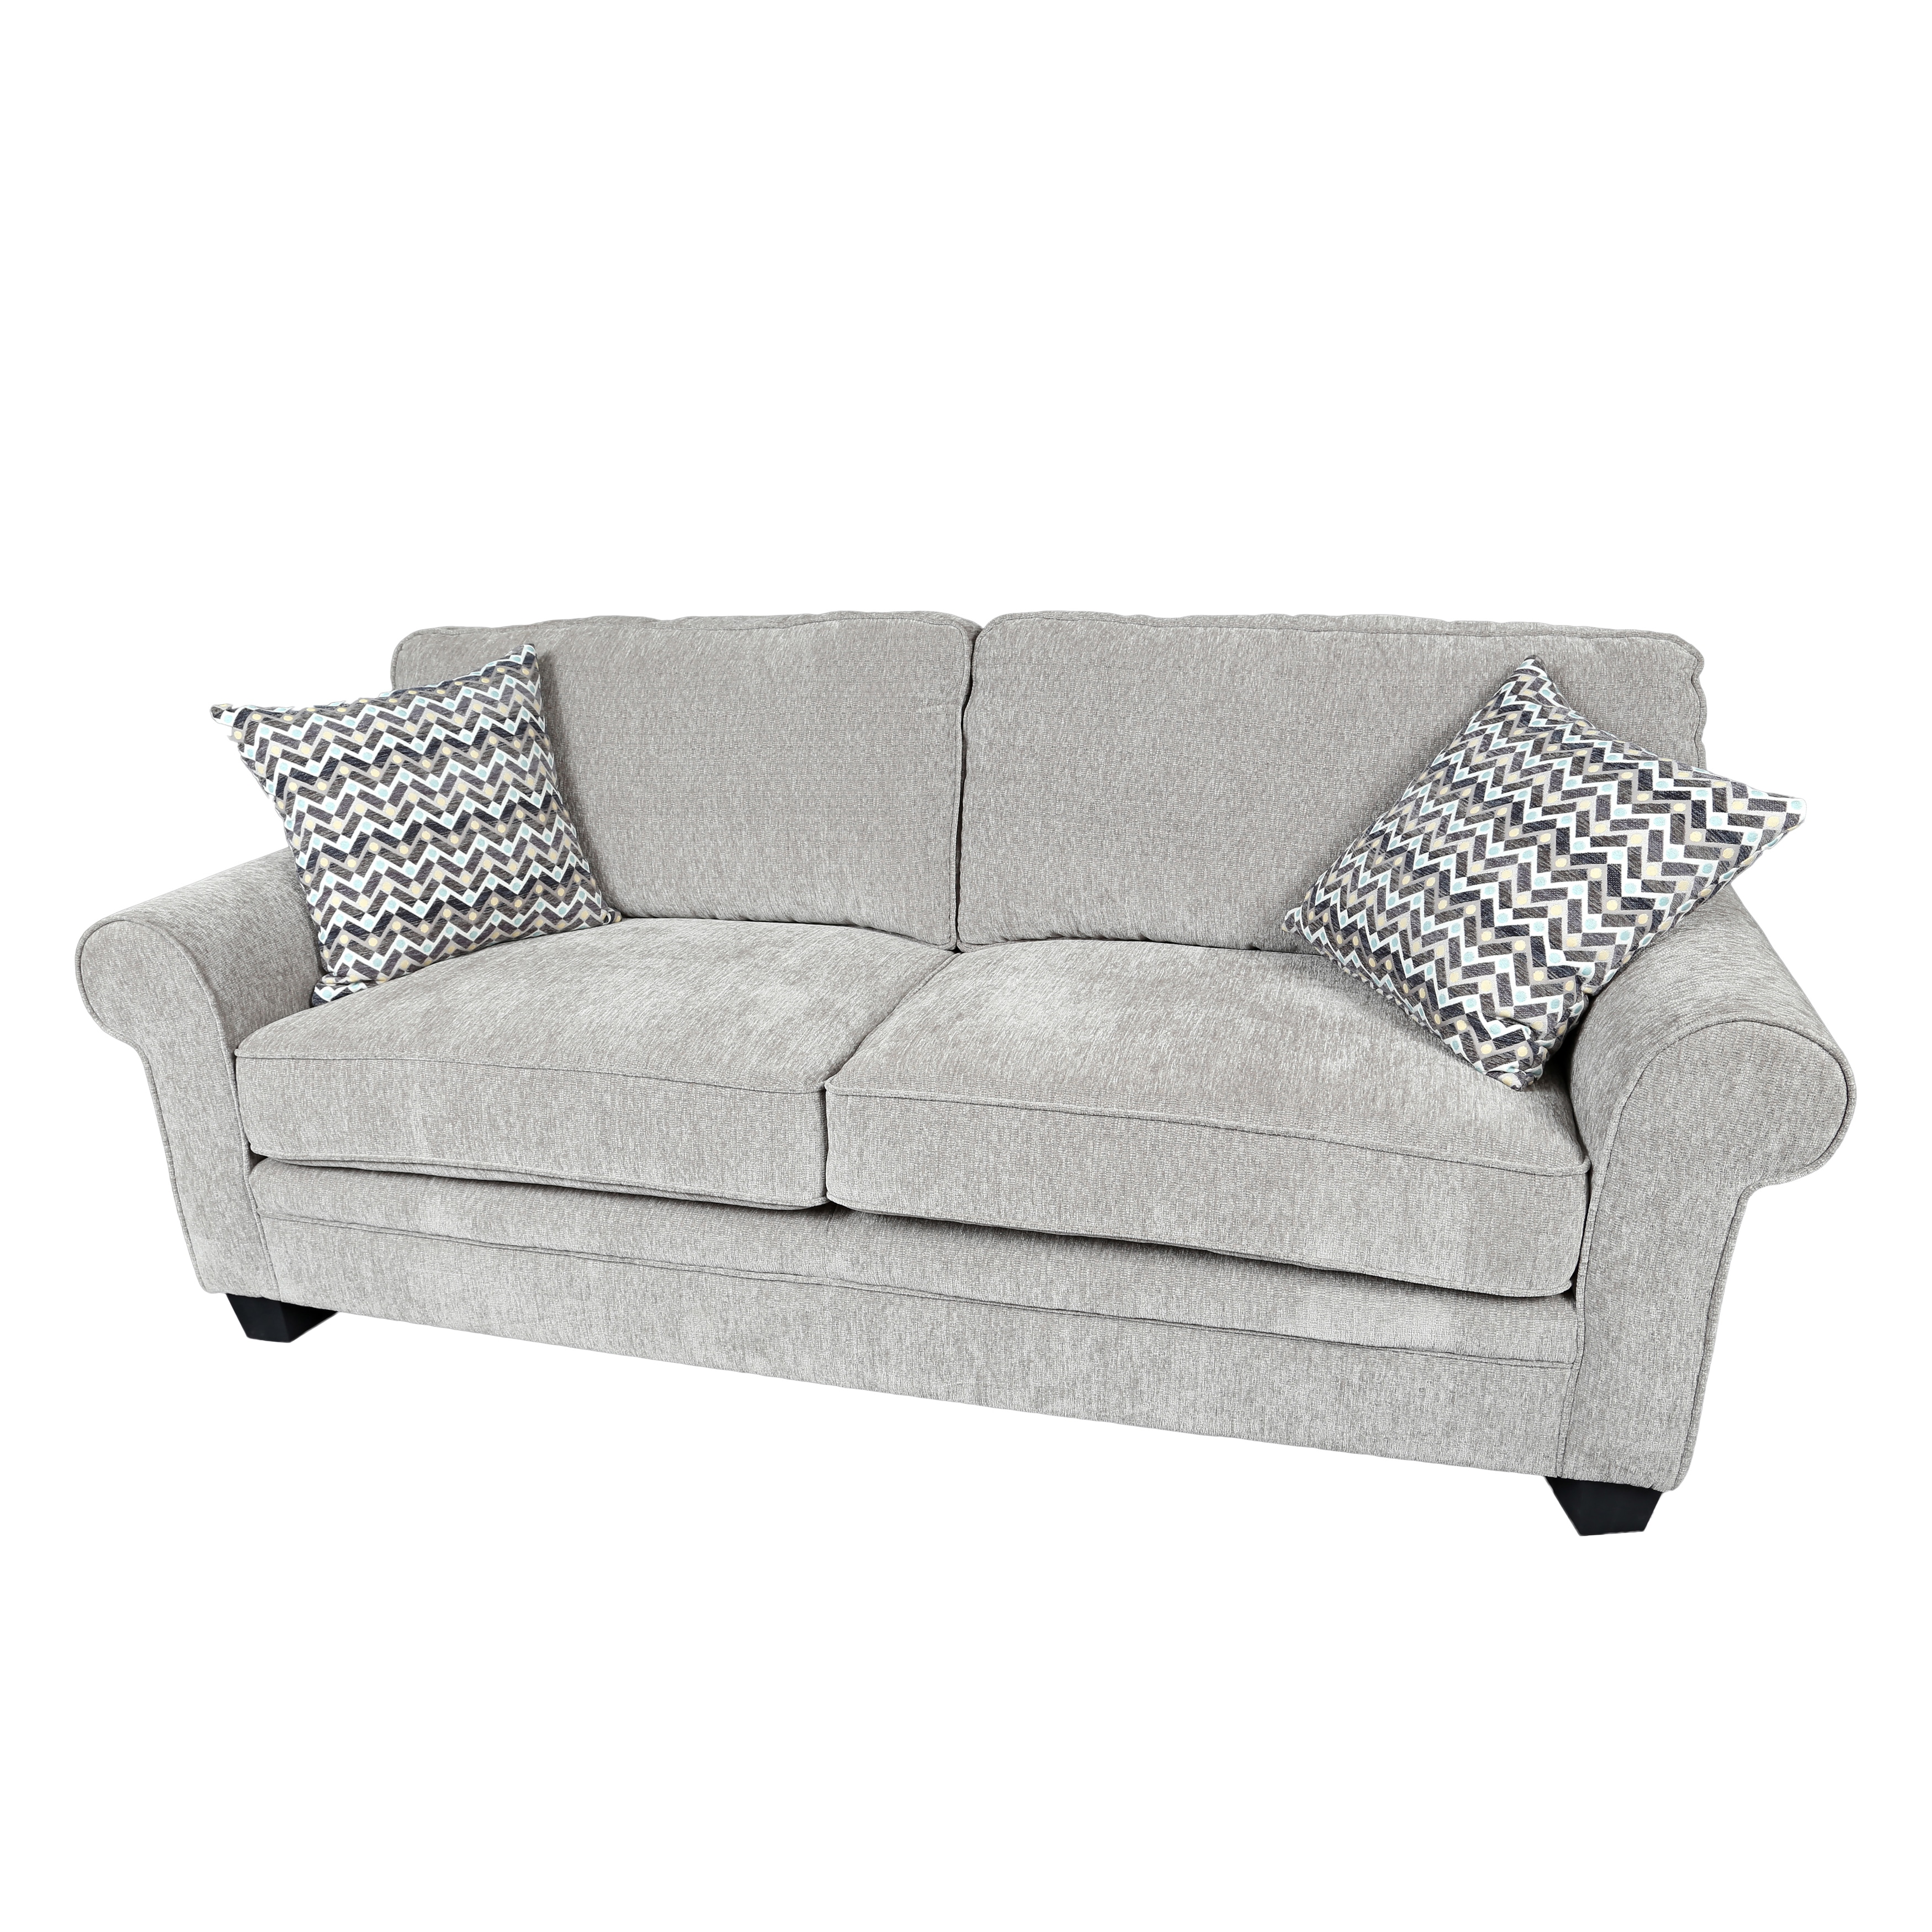 Chenille Sofa Review Review Home Decor